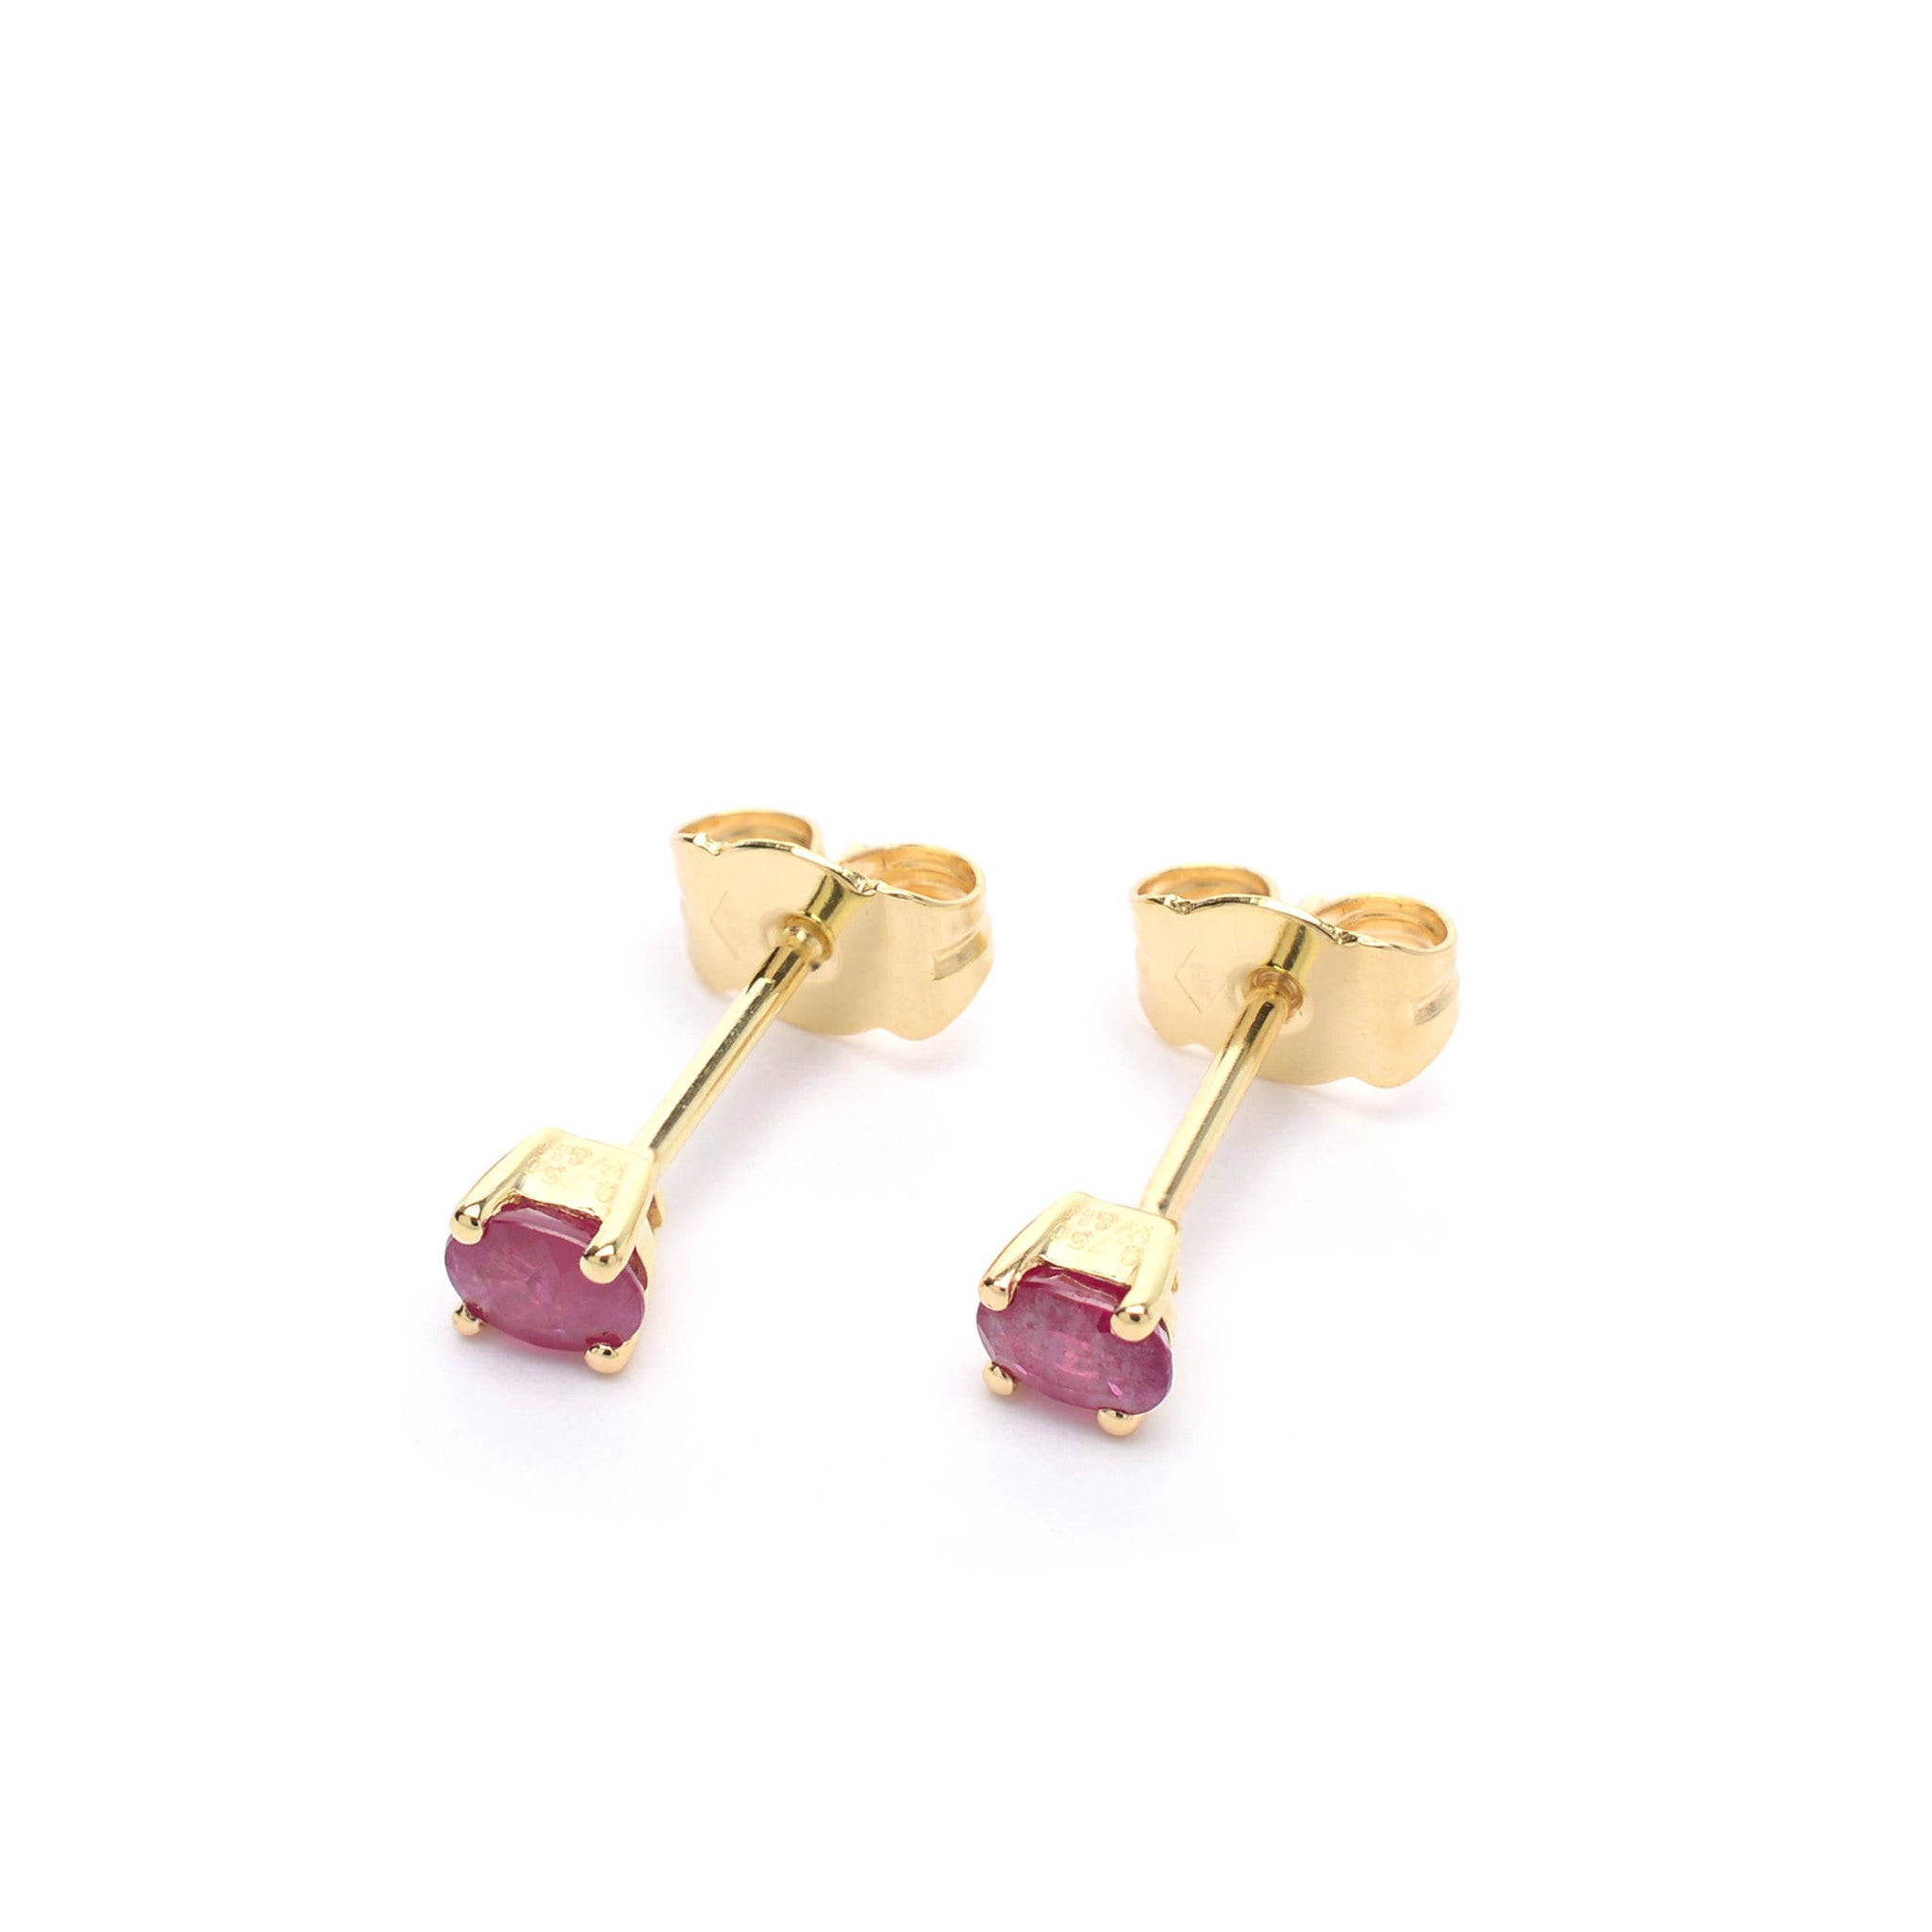 18kt Gold Stud Earrings with Ruby